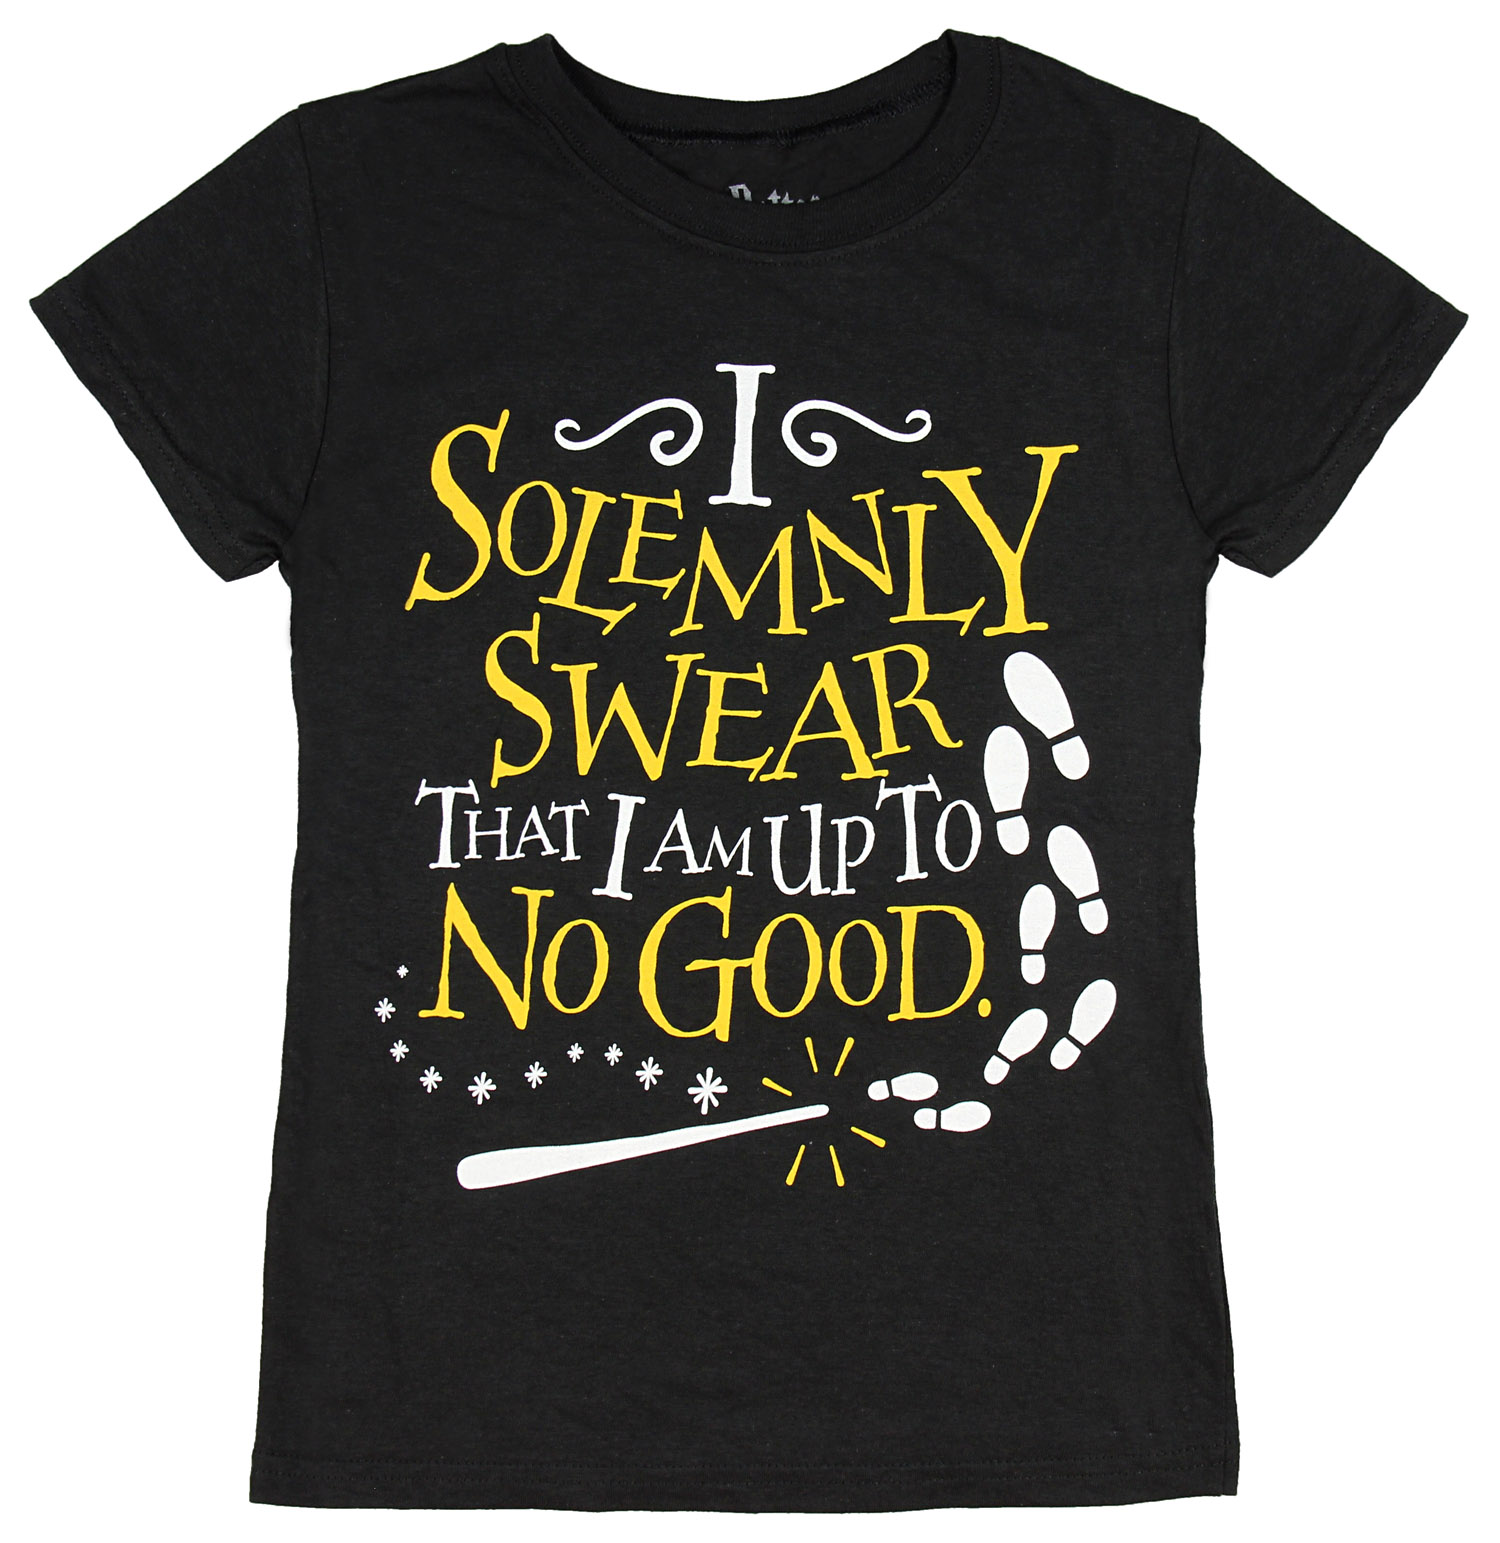 Harry Potter Shirt Girls I Solemnly Swear That I Am Up To No Good Graphic T-Shirt